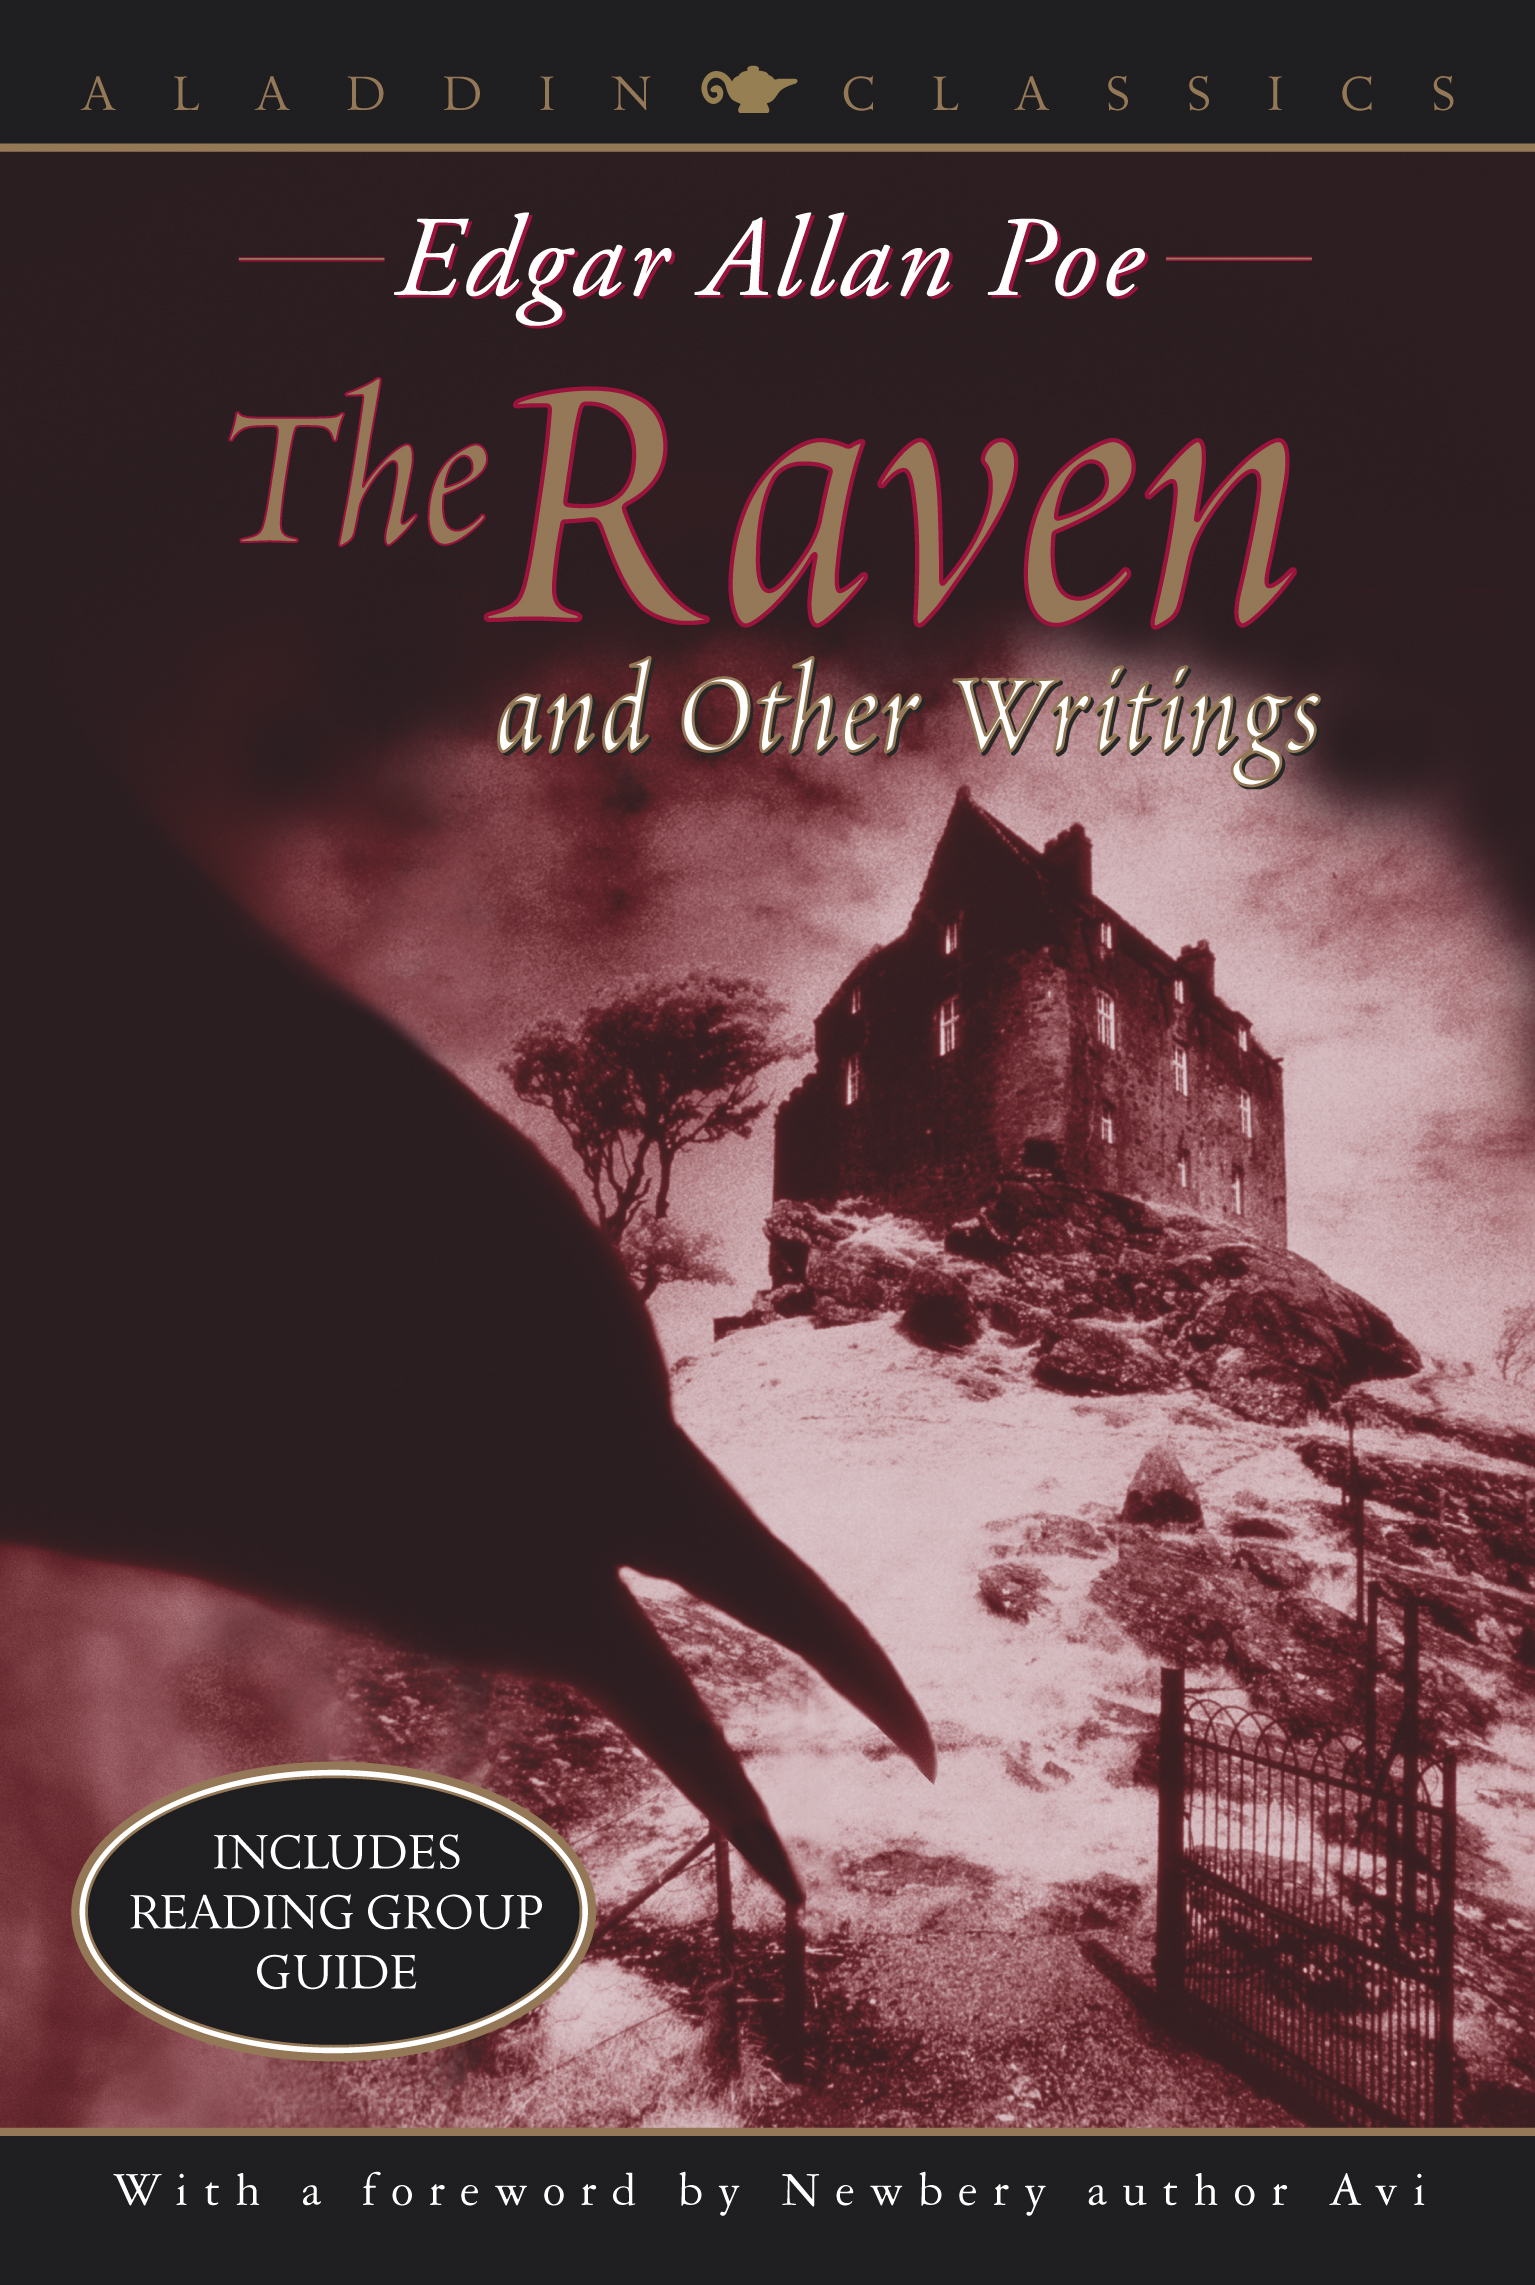 The Raven and Other Writings  Book by Edgar Allan Poe